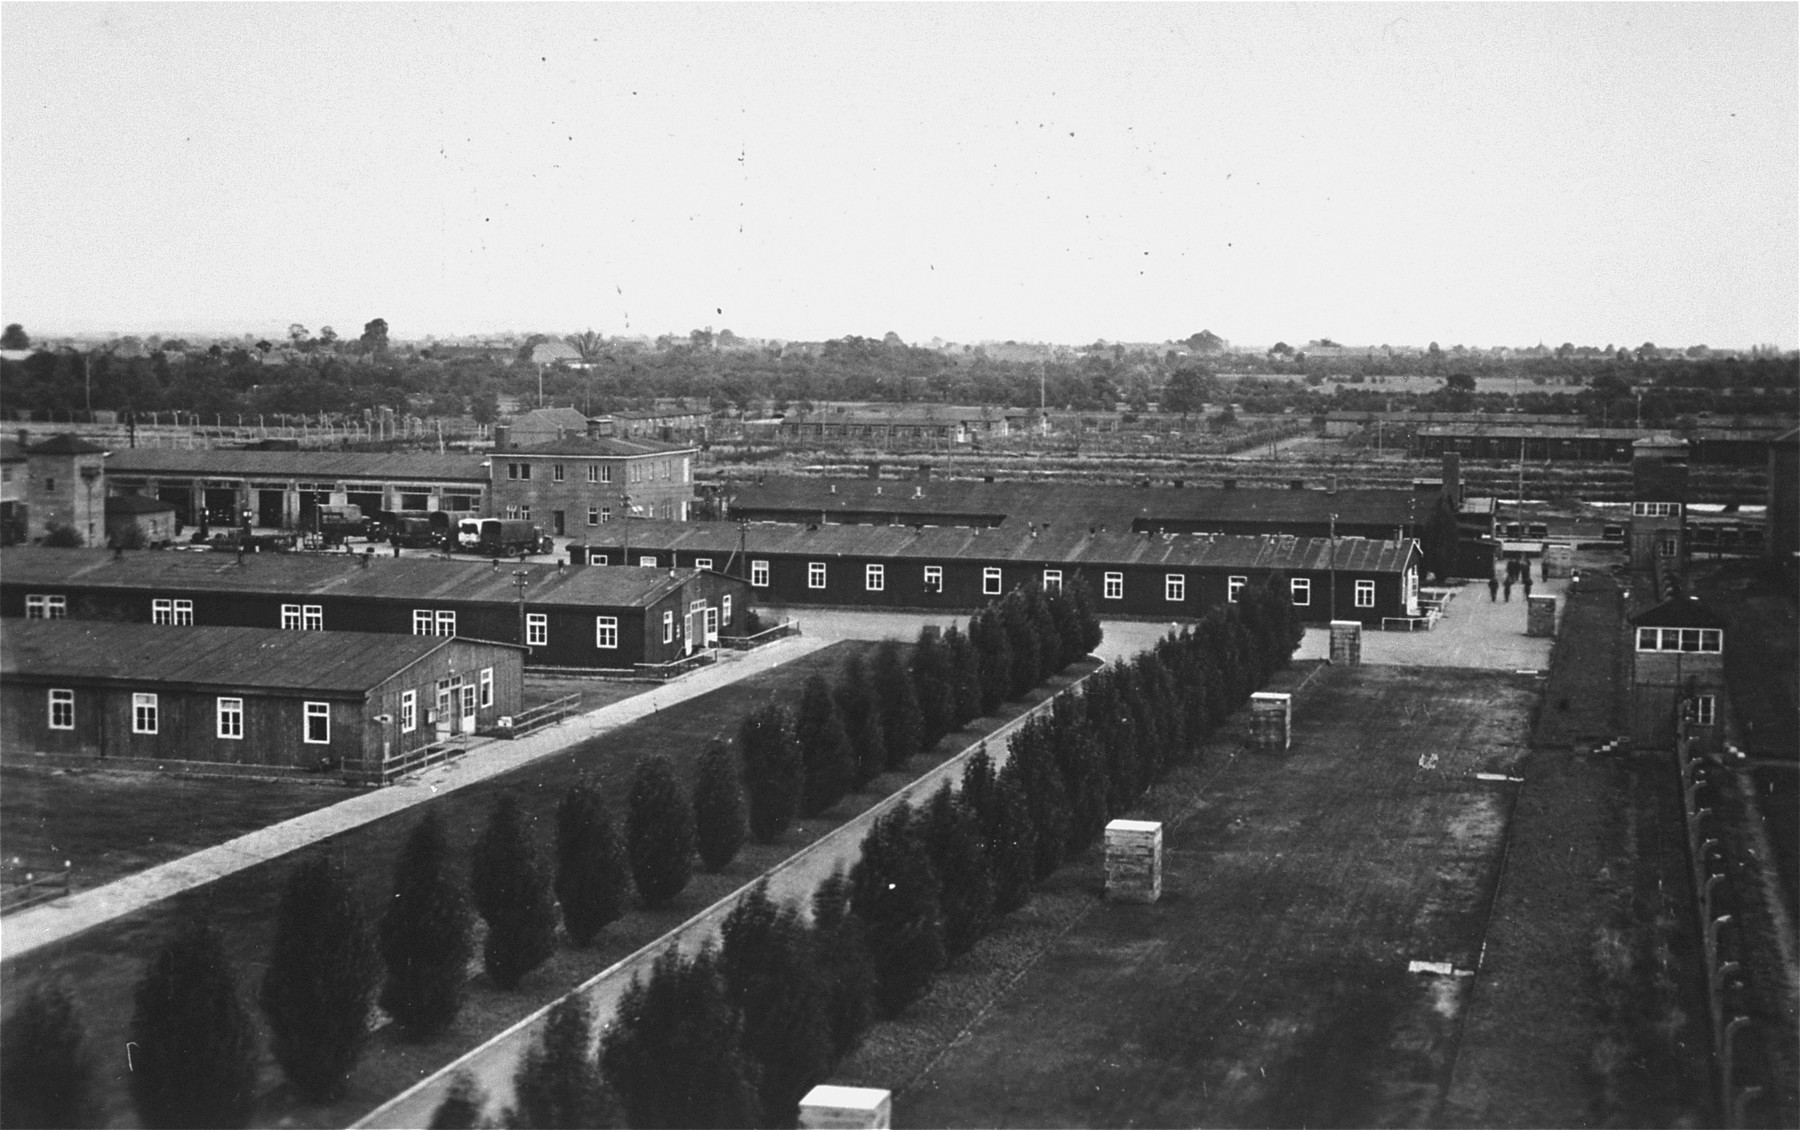 View of a section of the Neuengamme concentration camp after liberation.